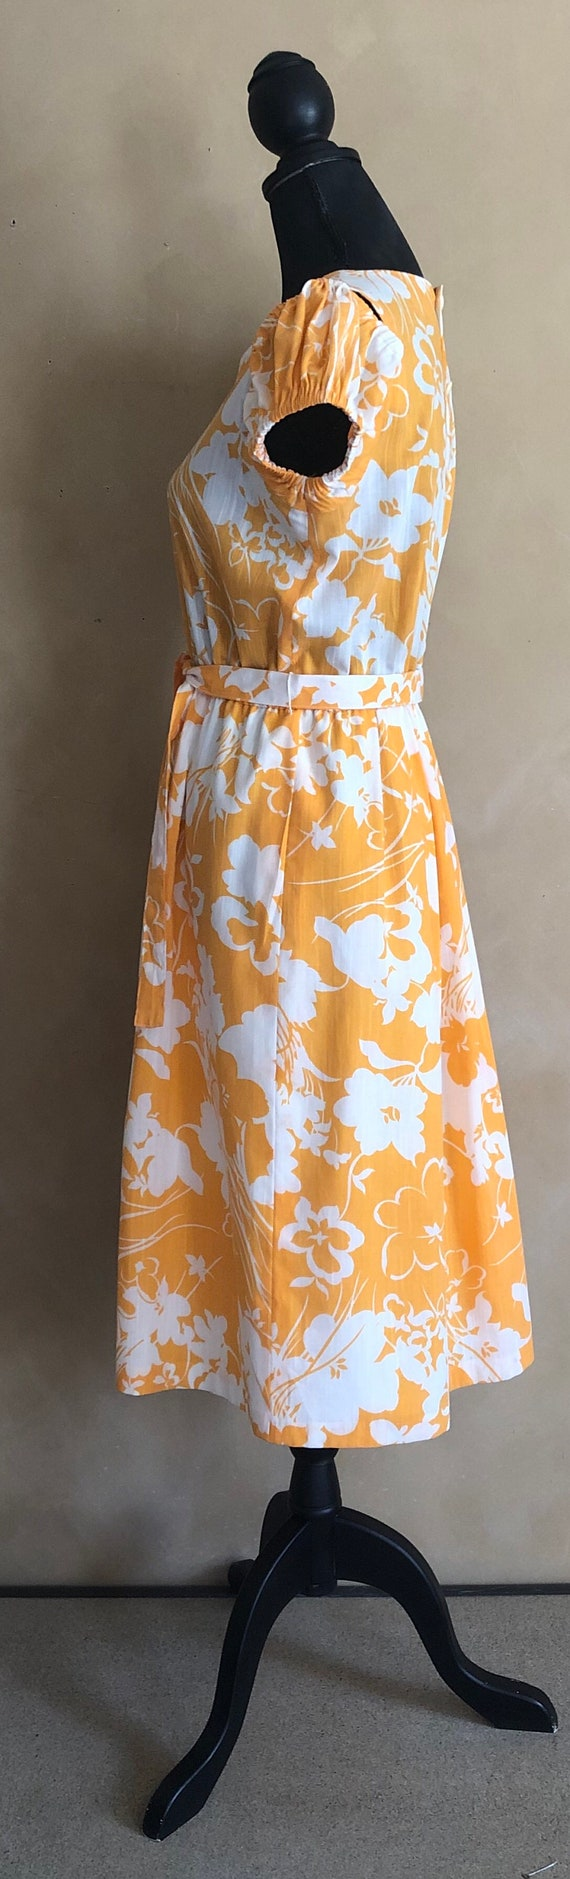 Vintage 70's Marigold  Yellow Floral Dress - image 8